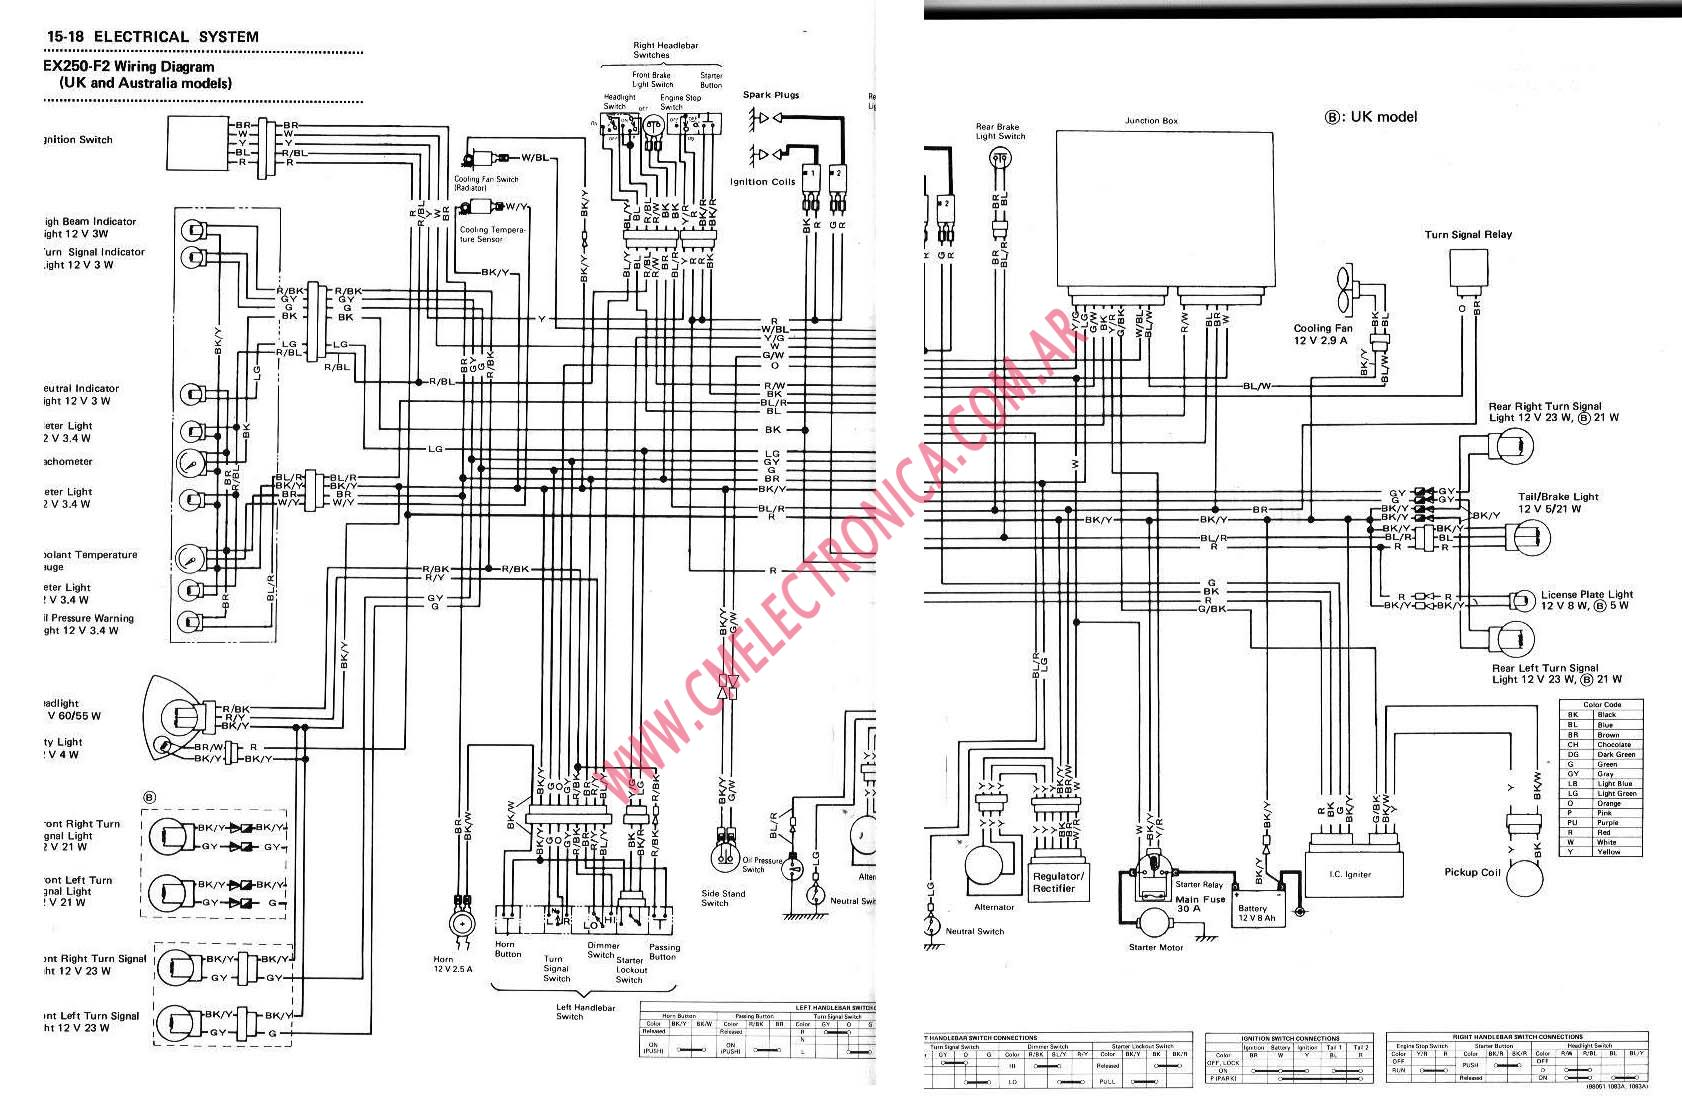 kawasaki wiring diagrams pioneer deh p3900mp diagram 220 get free image about